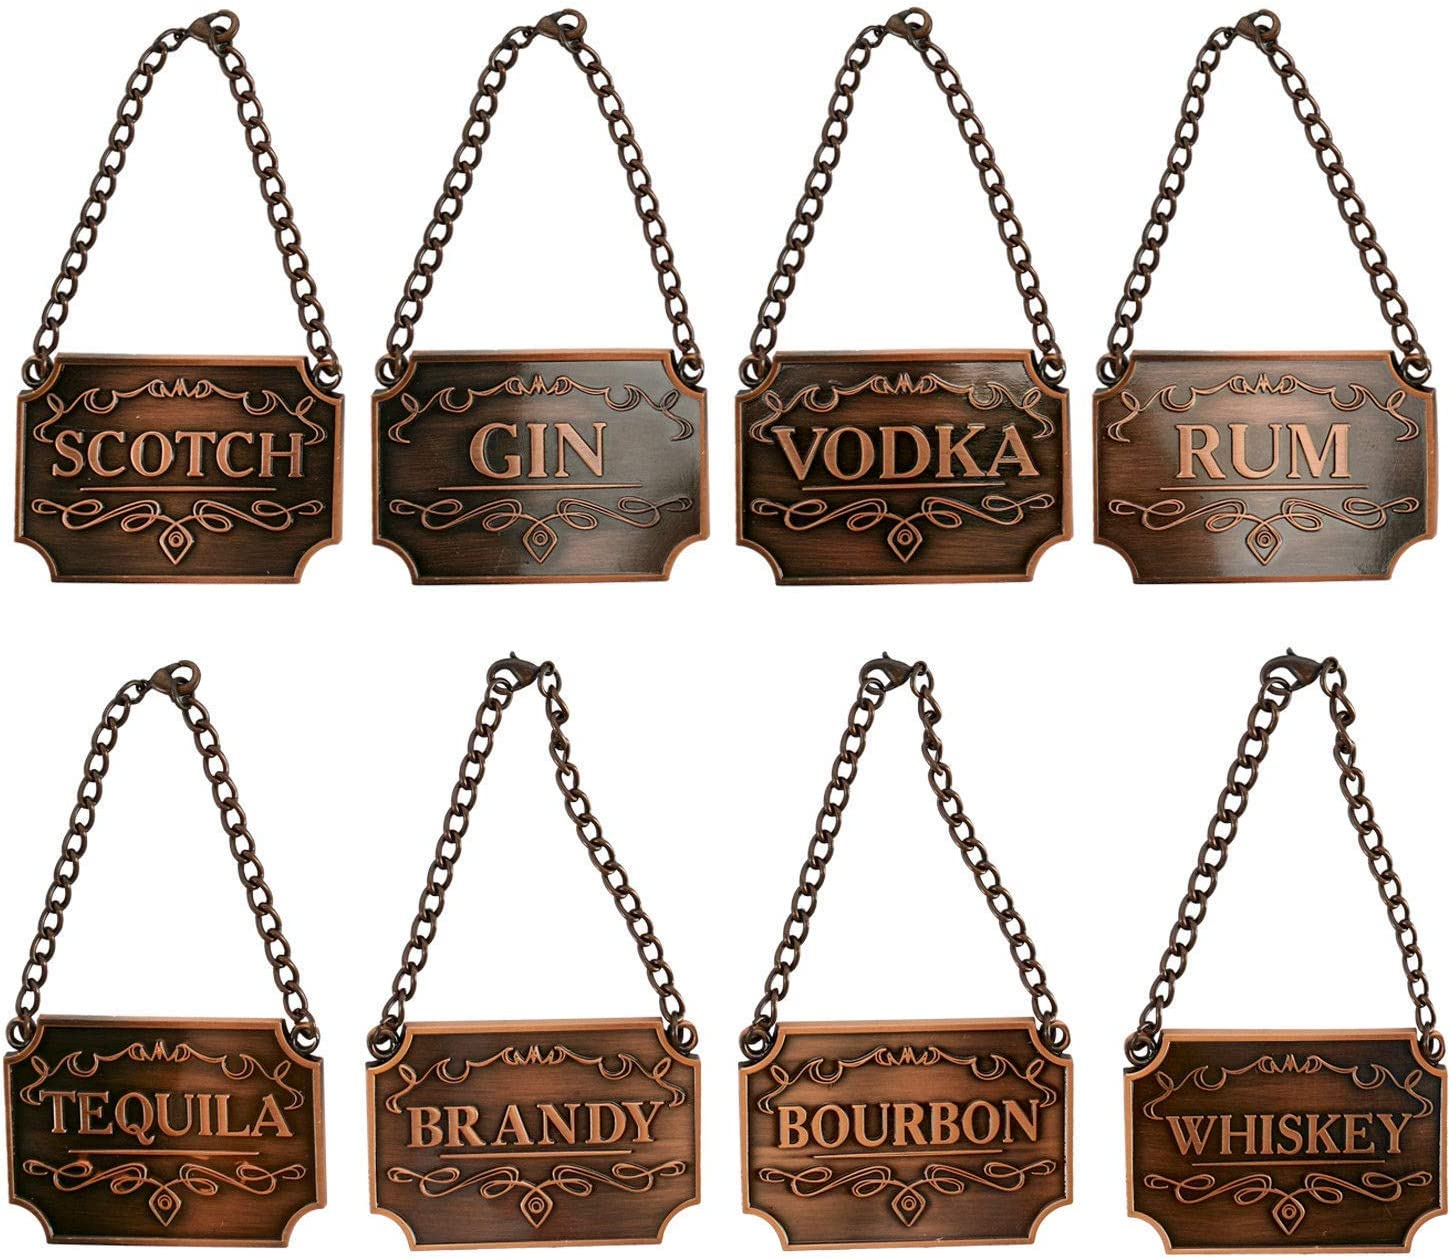 8PCS Copper Liquor Decanter Tags/Labels-(Whiskey, Bourbon, Scotch, Gin, Rum, Vodka, Tequila and Brandy) and with Adjustable Chain Fits Most Bottles